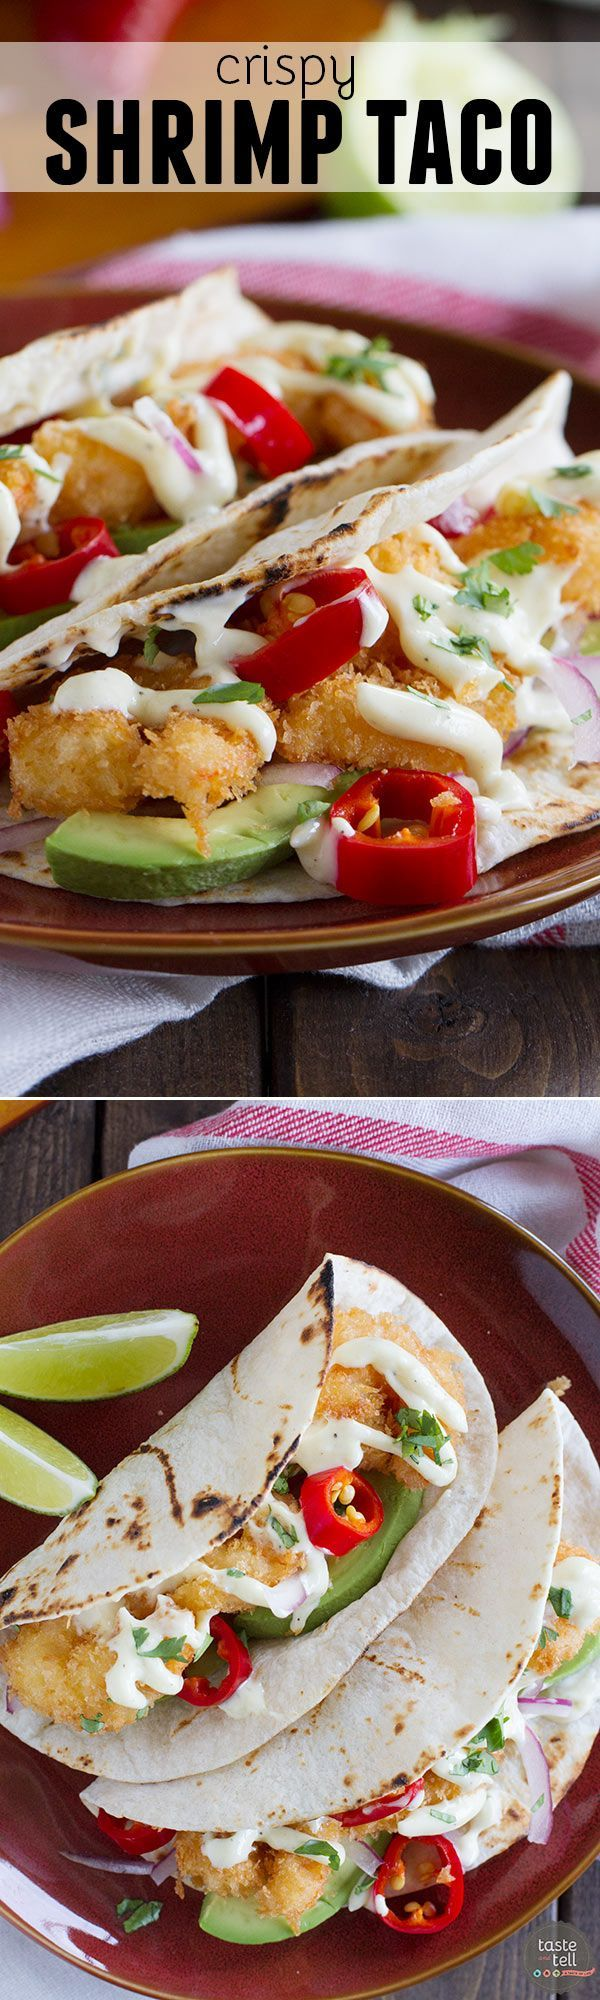 Crispy fried shrimp are combined with your favorite taco toppings and a homemade mayonnaise in this Crispy Shrimp Taco Recipe that is perfect for Taco Tuesday.